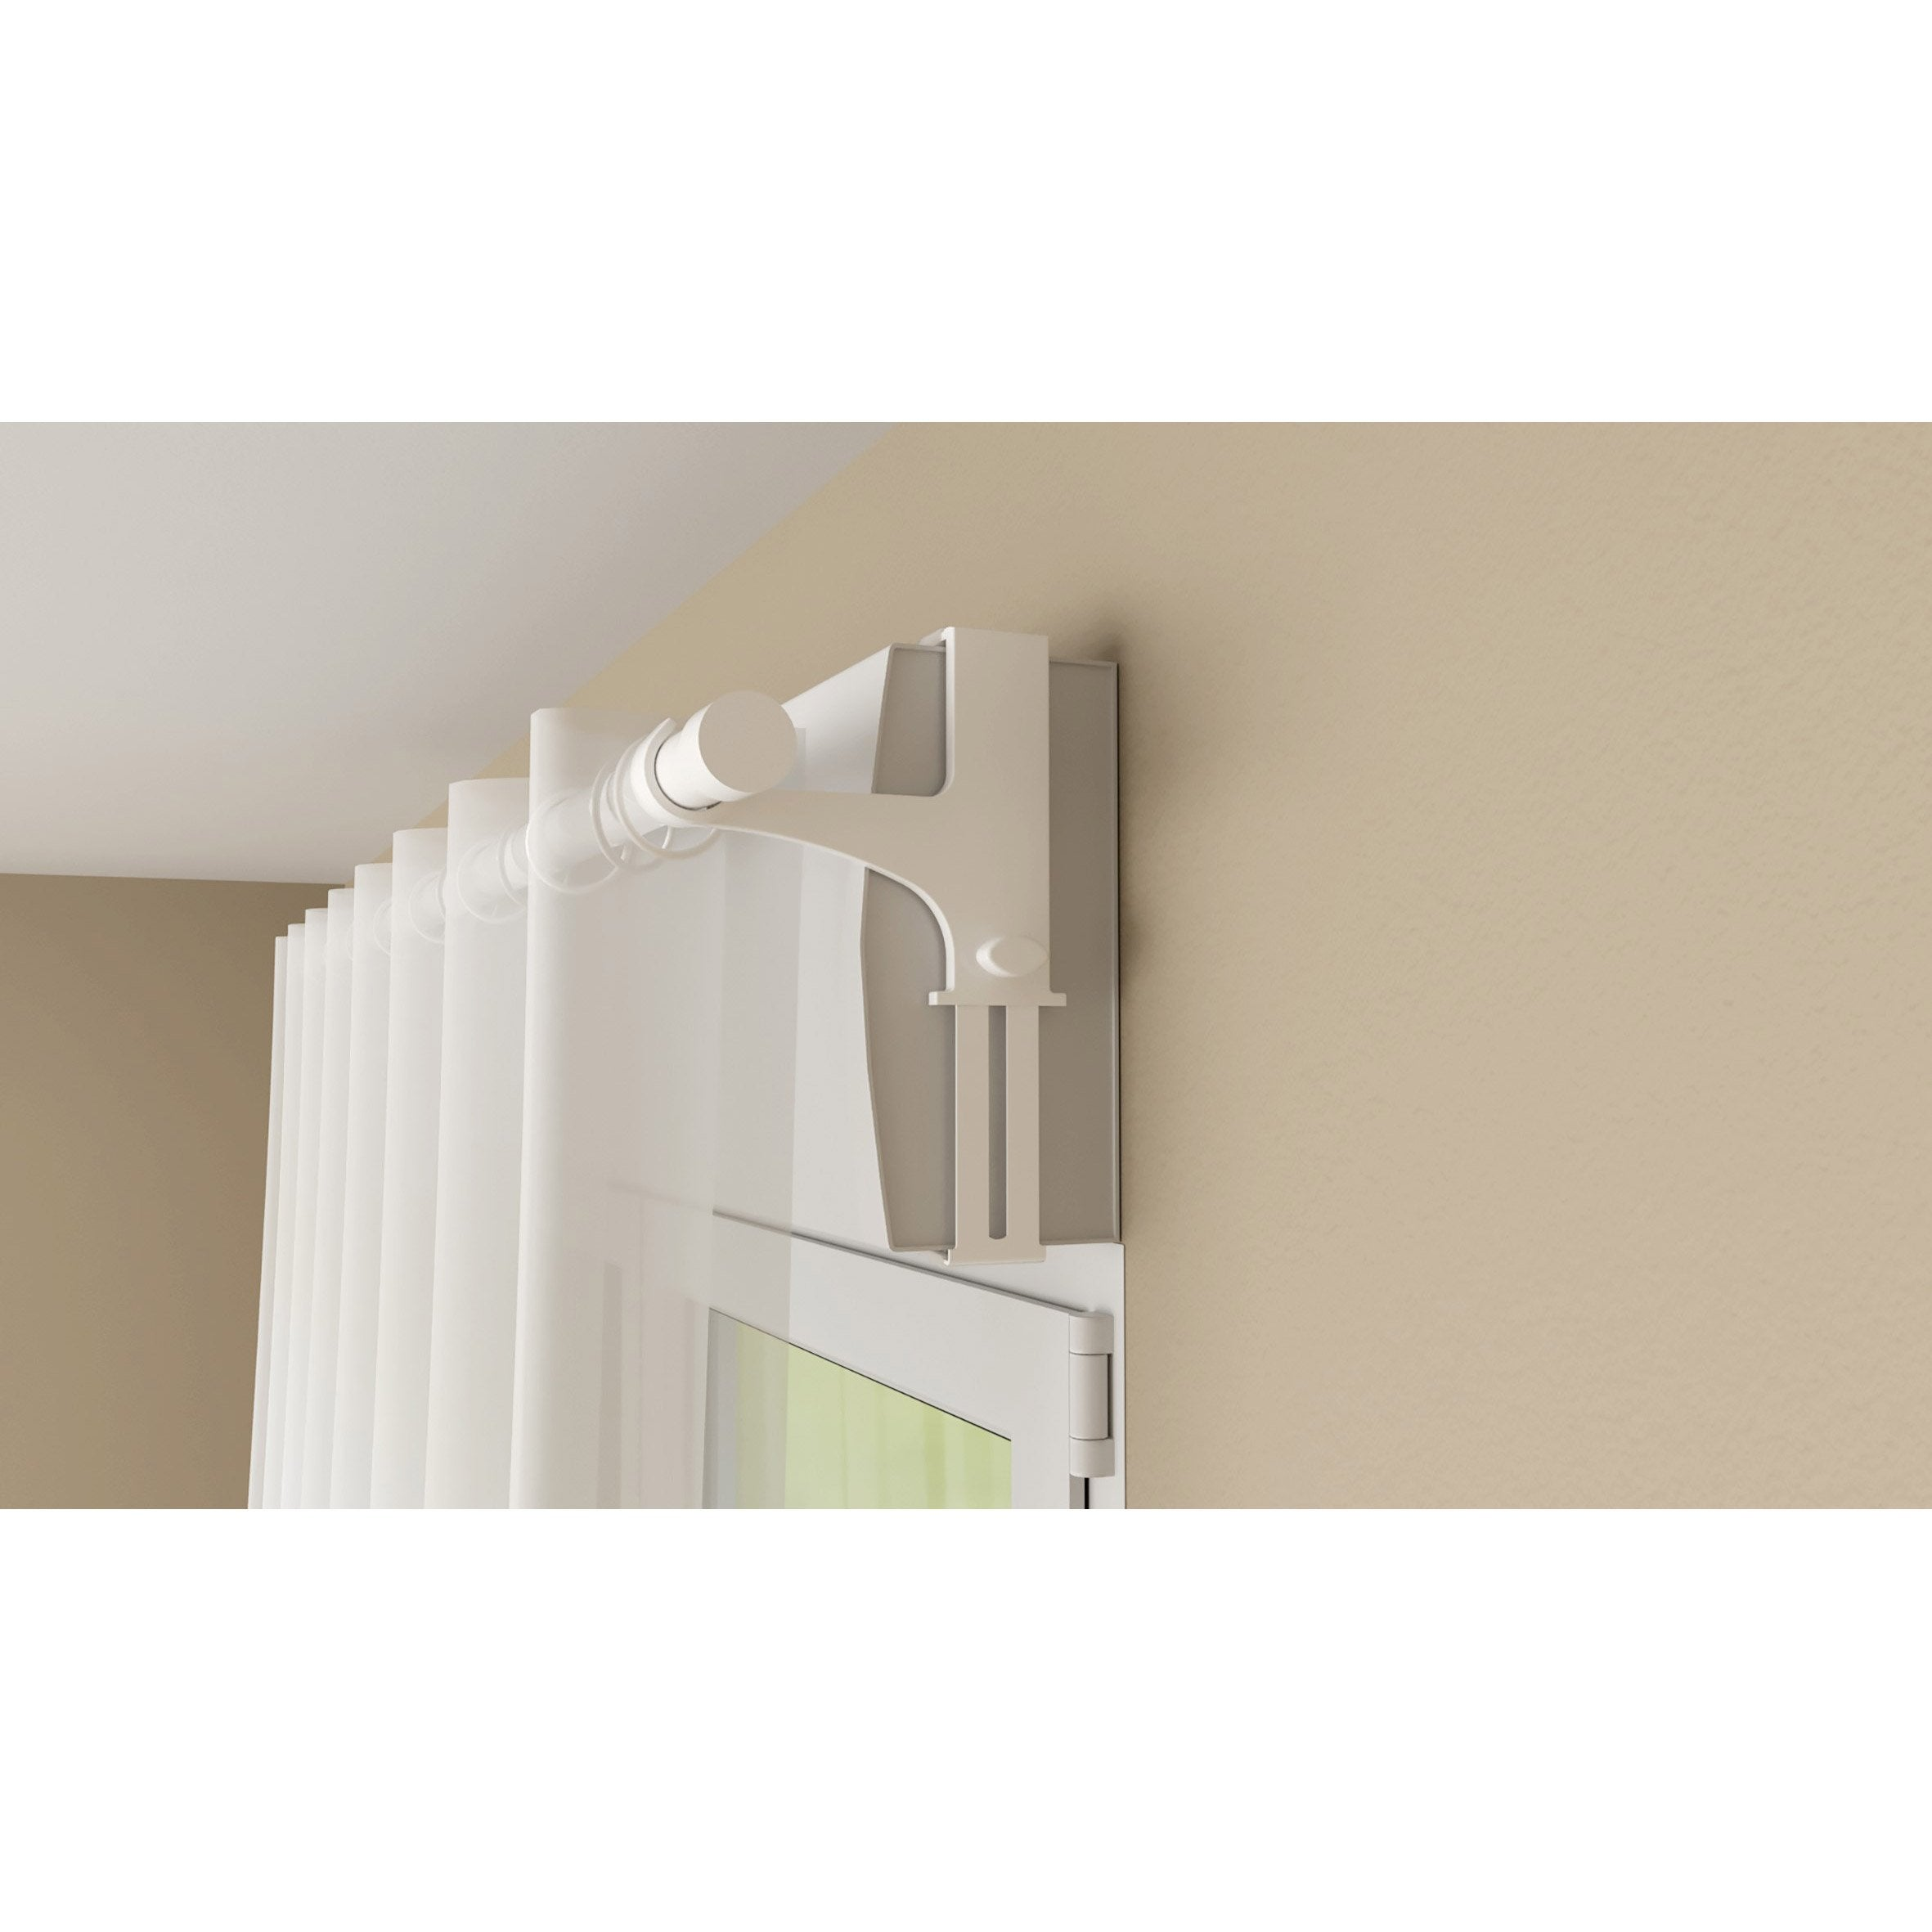 Support Tringle Sans Percage lot de 2 supports sans perçage barre à rideau caisson volet,20/28 mm blanc  laqué